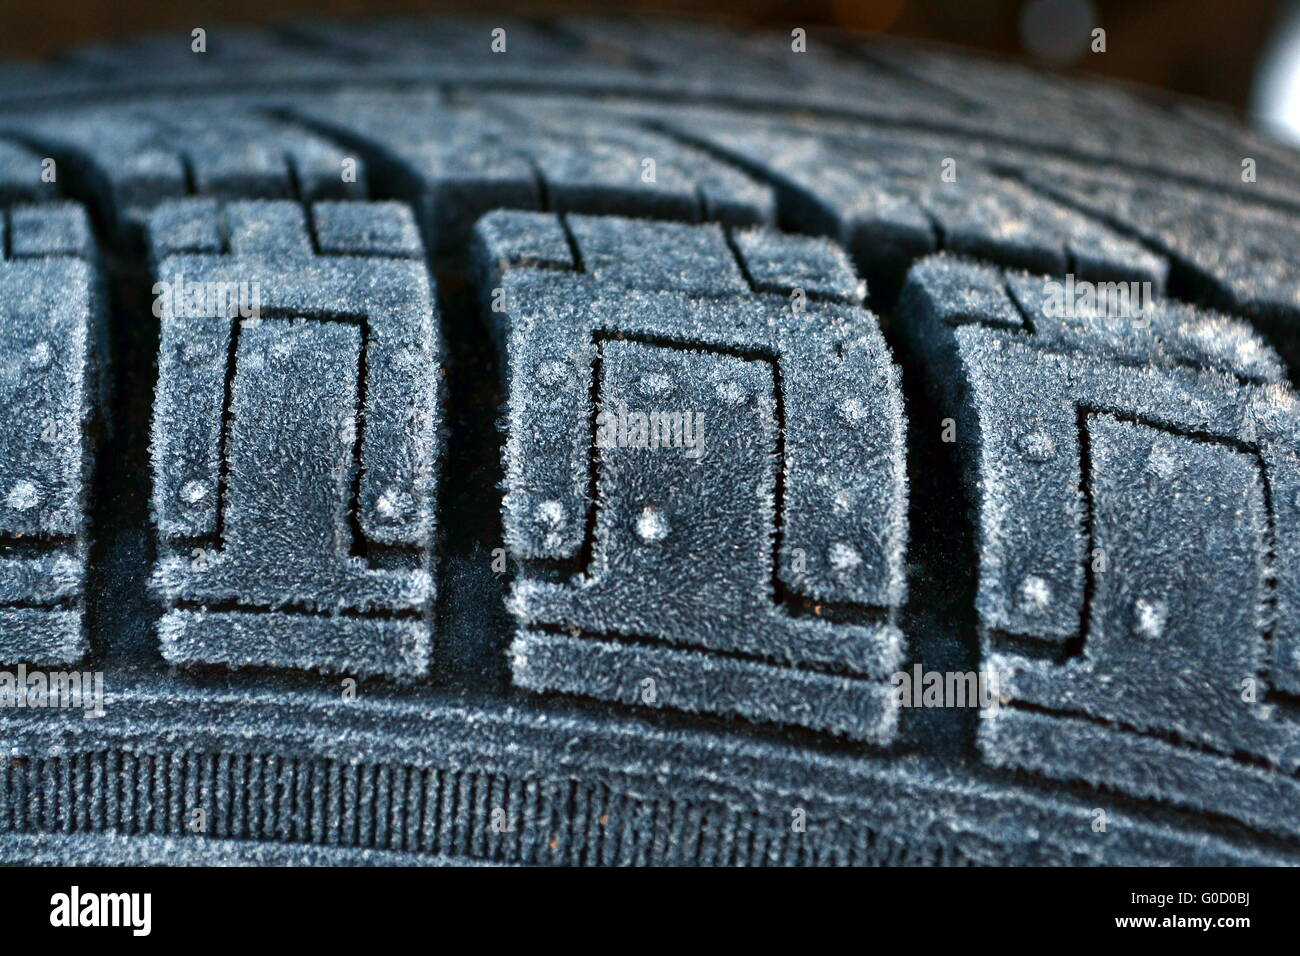 The tire is covered with frost. - Stock Image